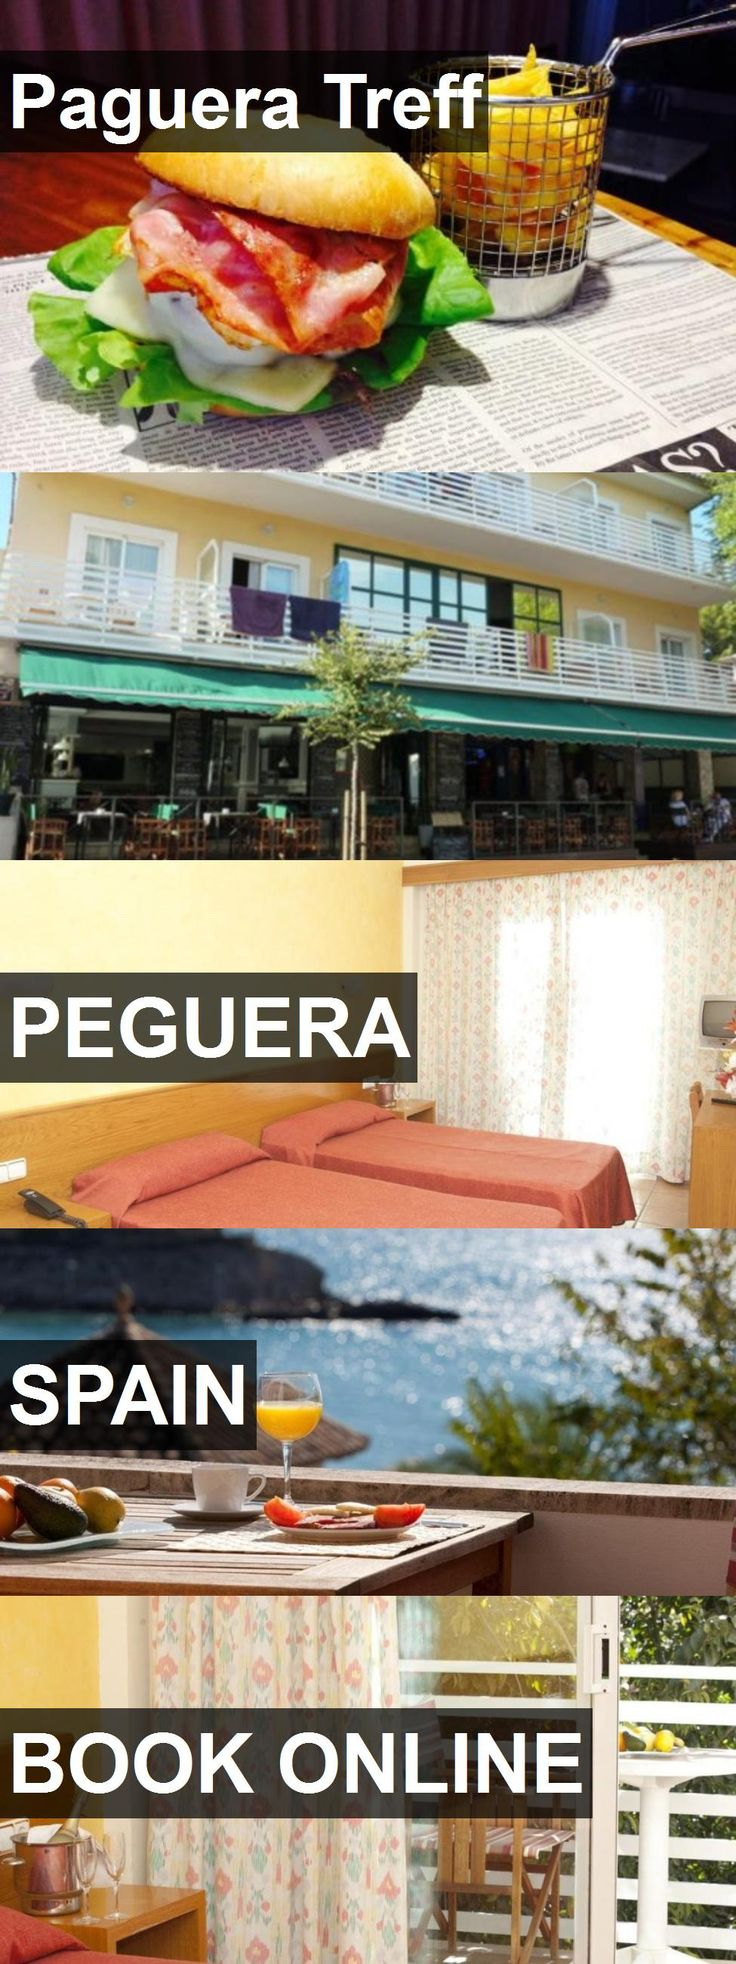 Hotel Paguera Treff in Peguera, Spain. For more information, photos, reviews and best prices please follow the link. #Spain #Peguera #travel #vacation #hotel